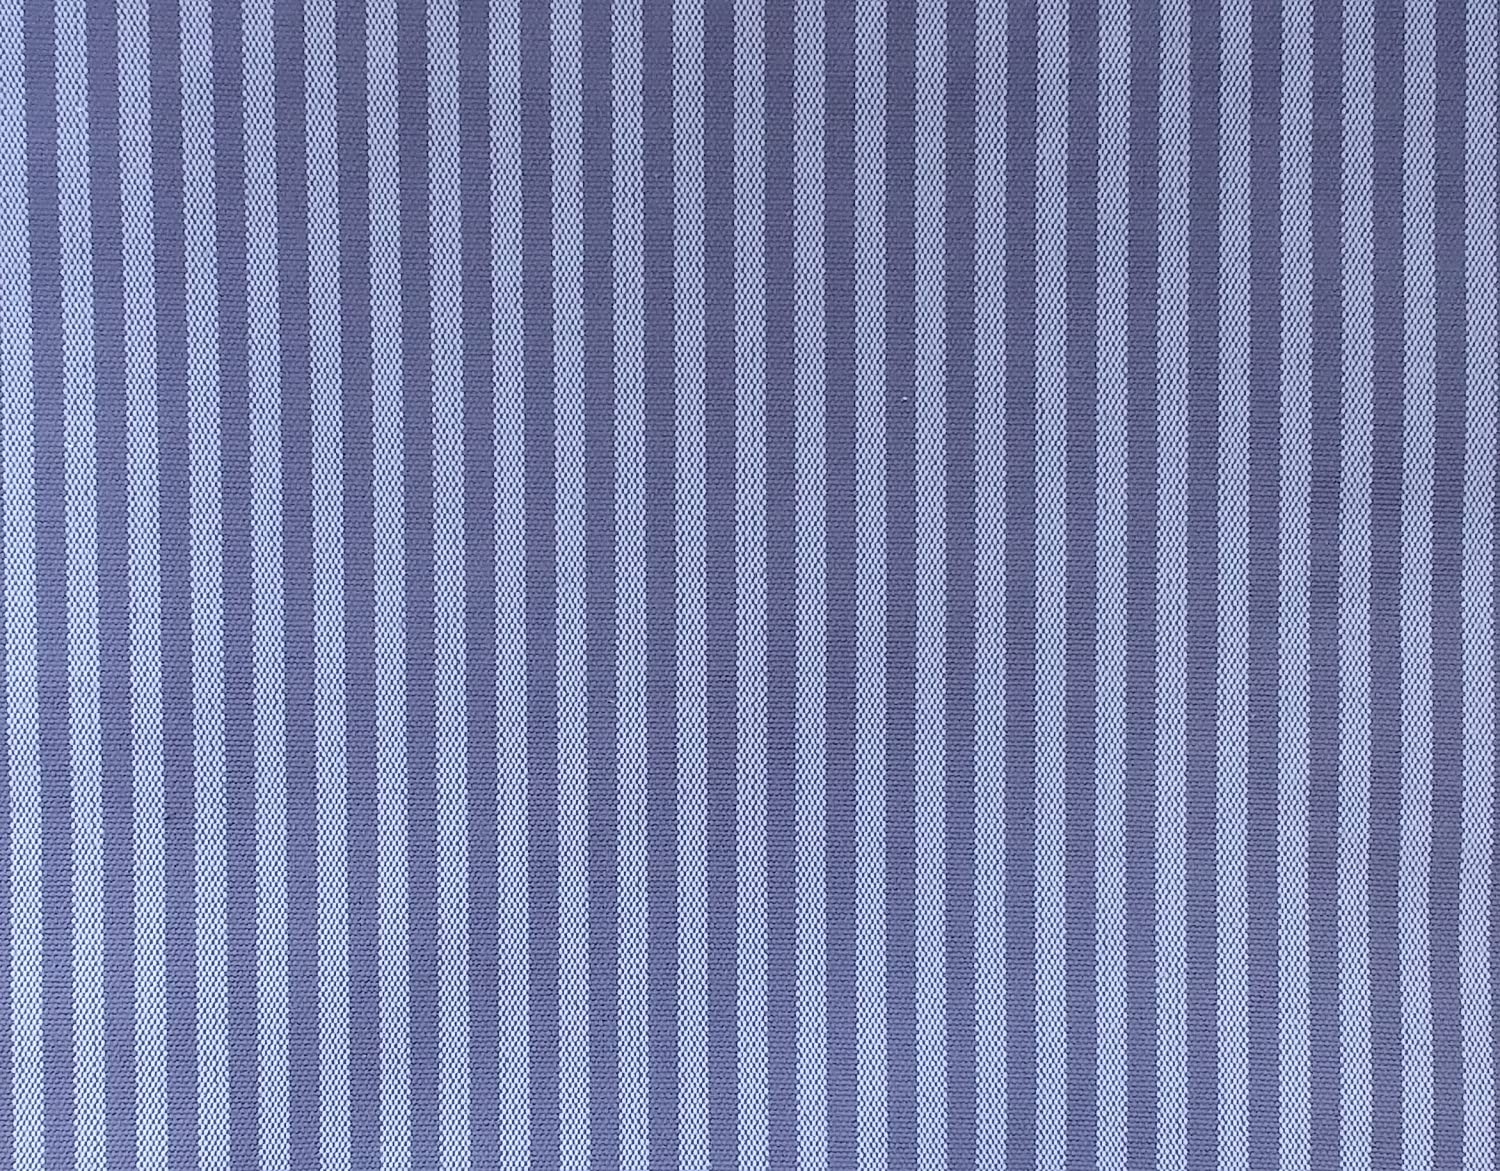 Outdoor Deko Kissen Stripes Blau 40 x 40 cm (Stuhlkissen)